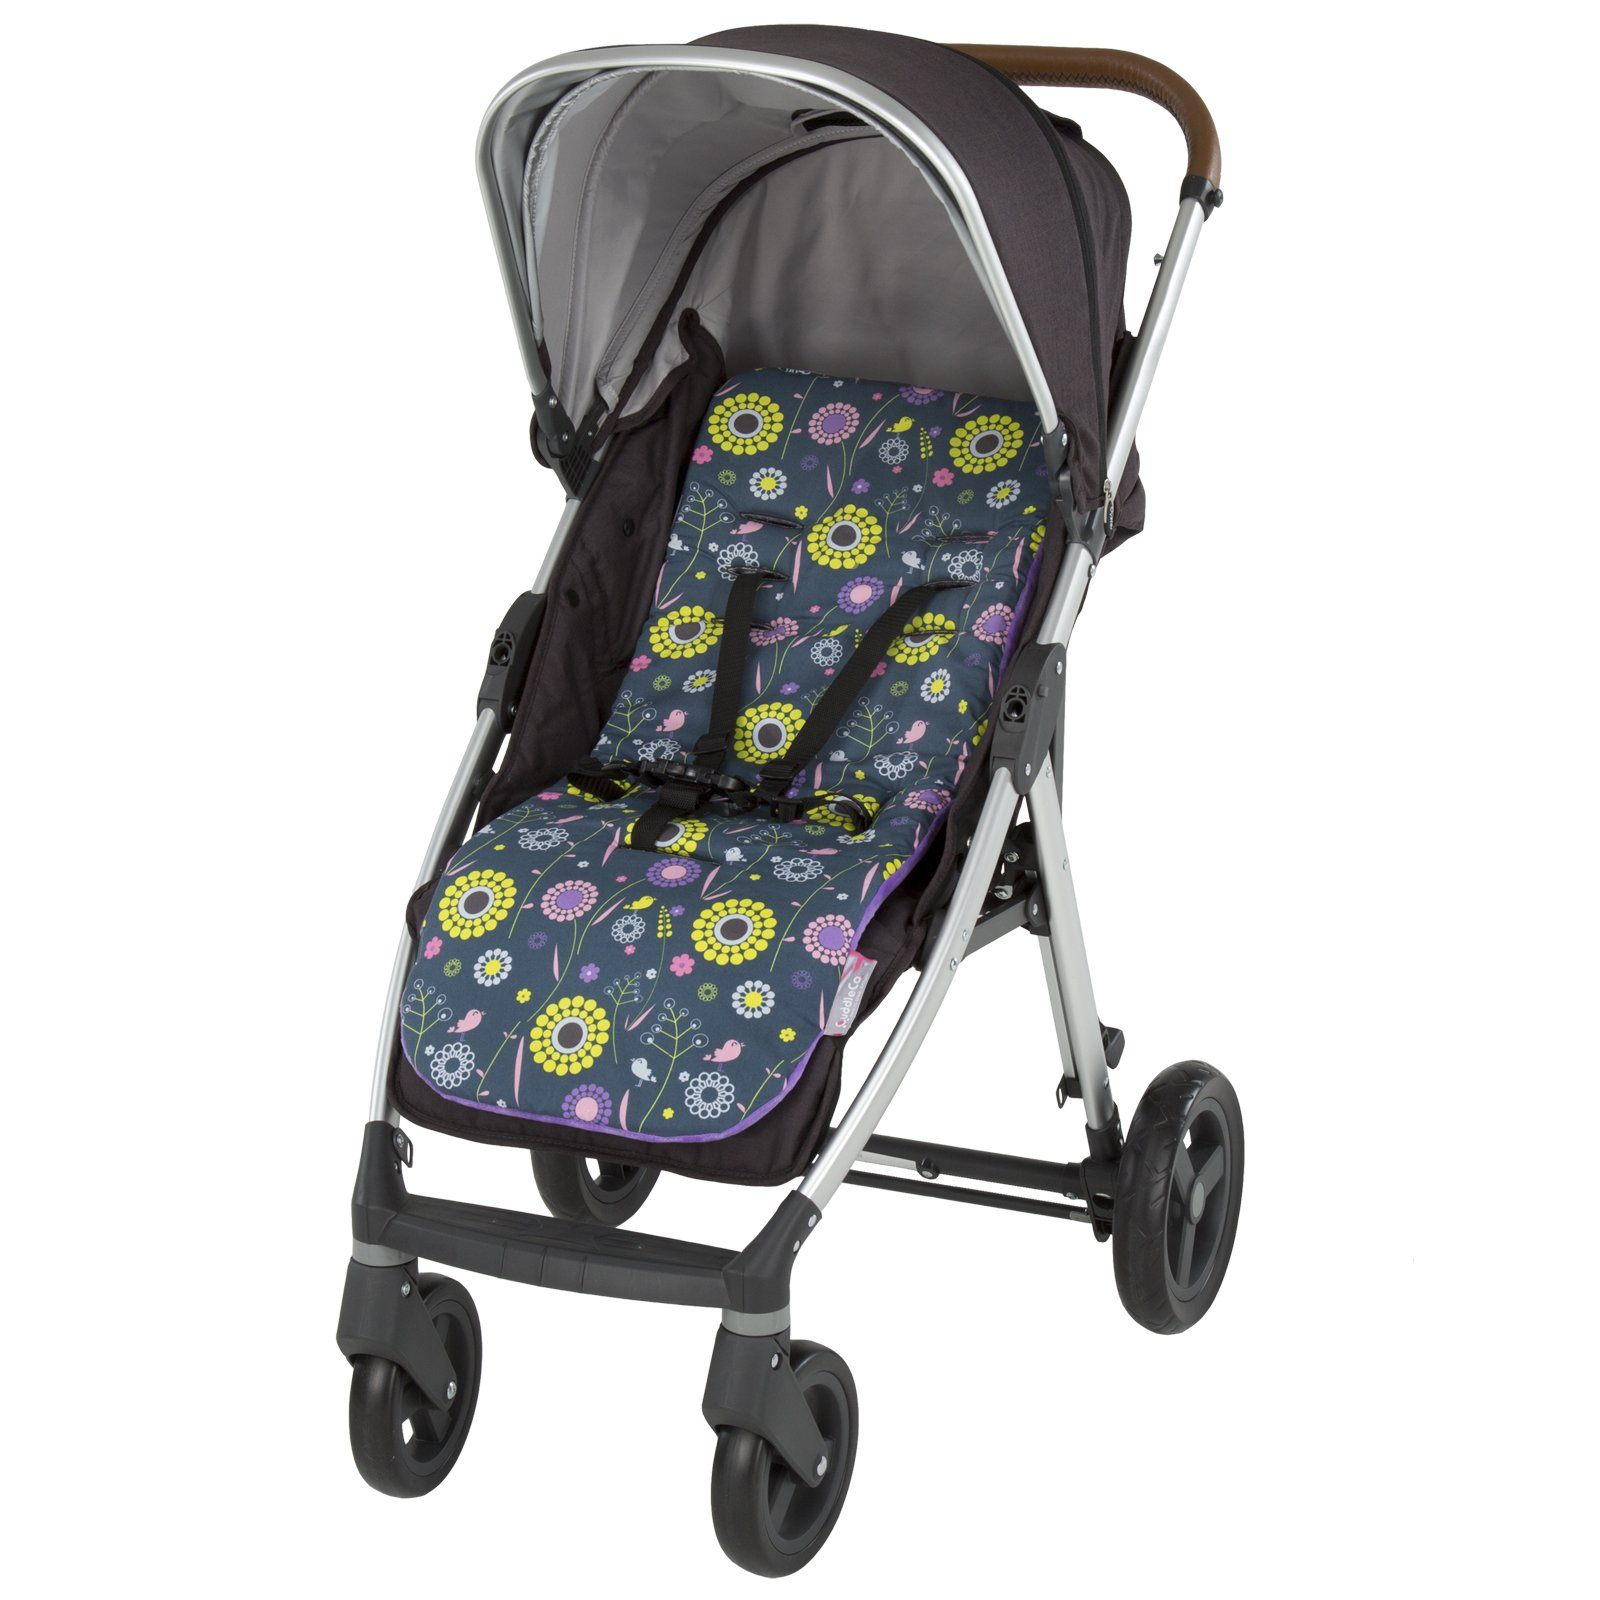 Comfi-Cush Memory Foam Stroller Liner - Blossoms On The Go cuddleco